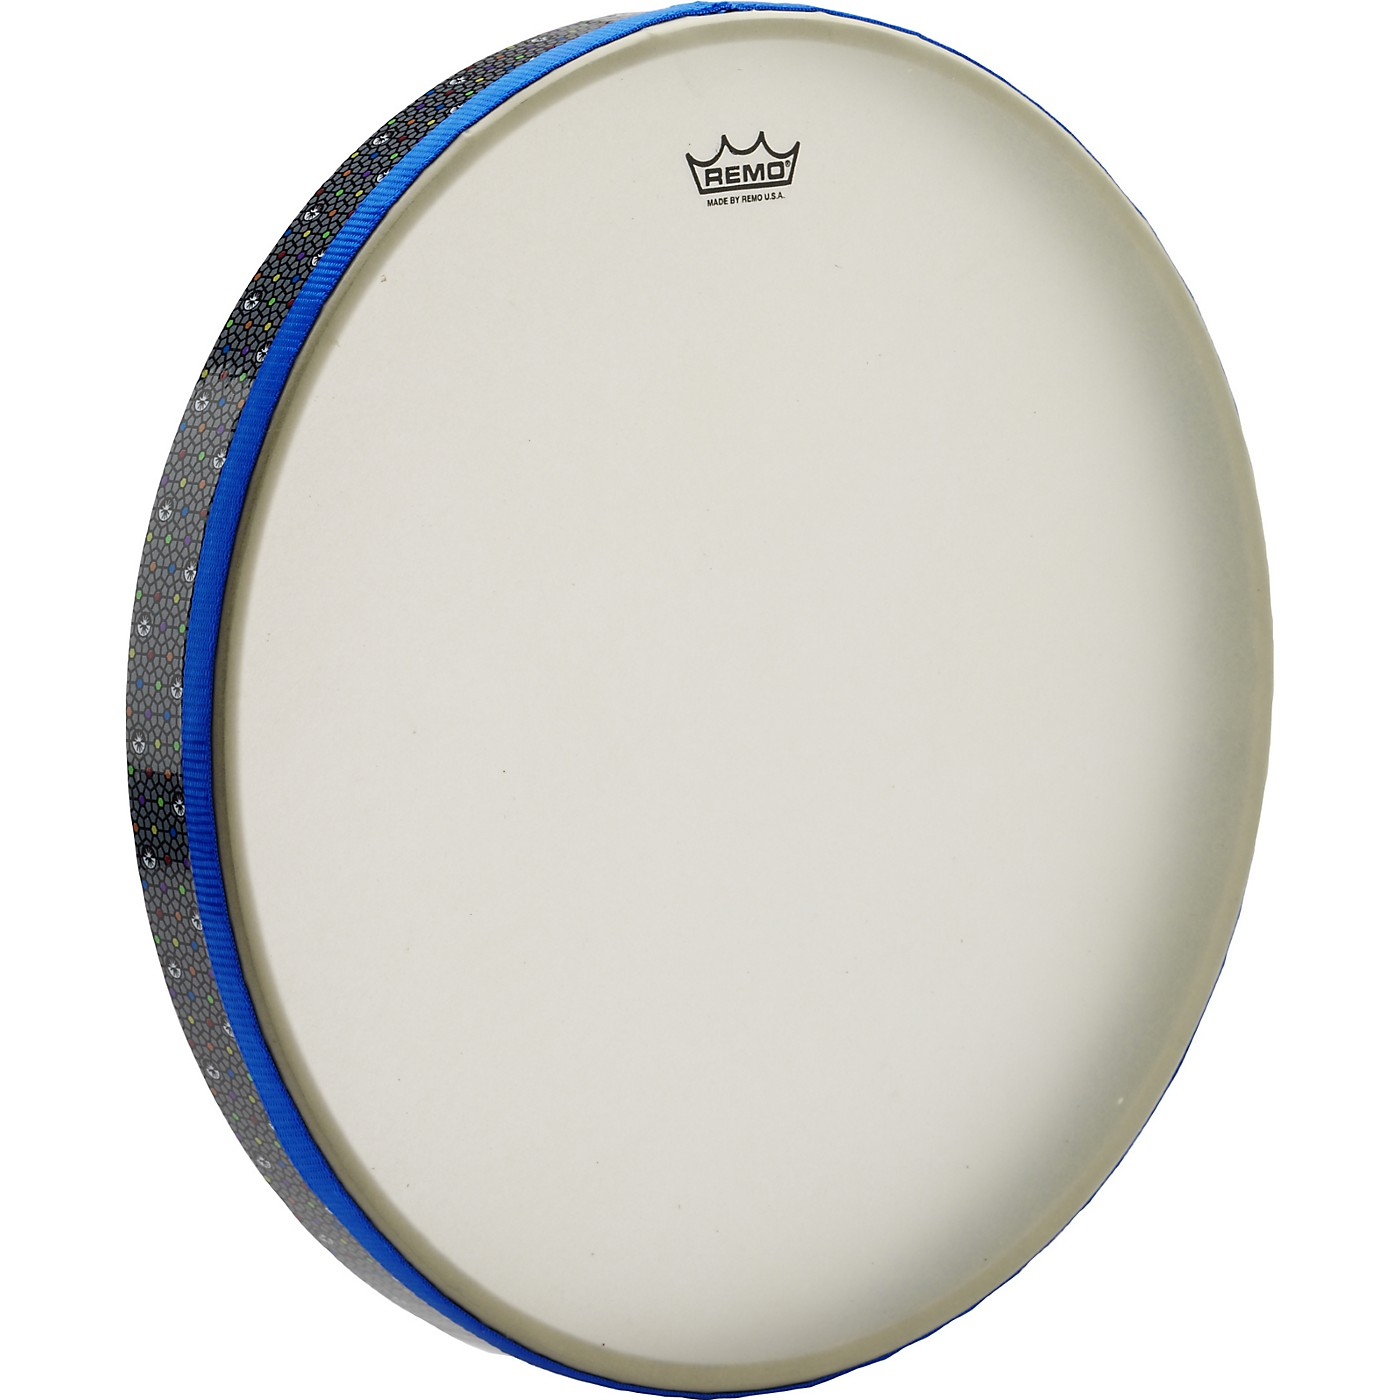 Remo Thinline Frame Drum thumbnail